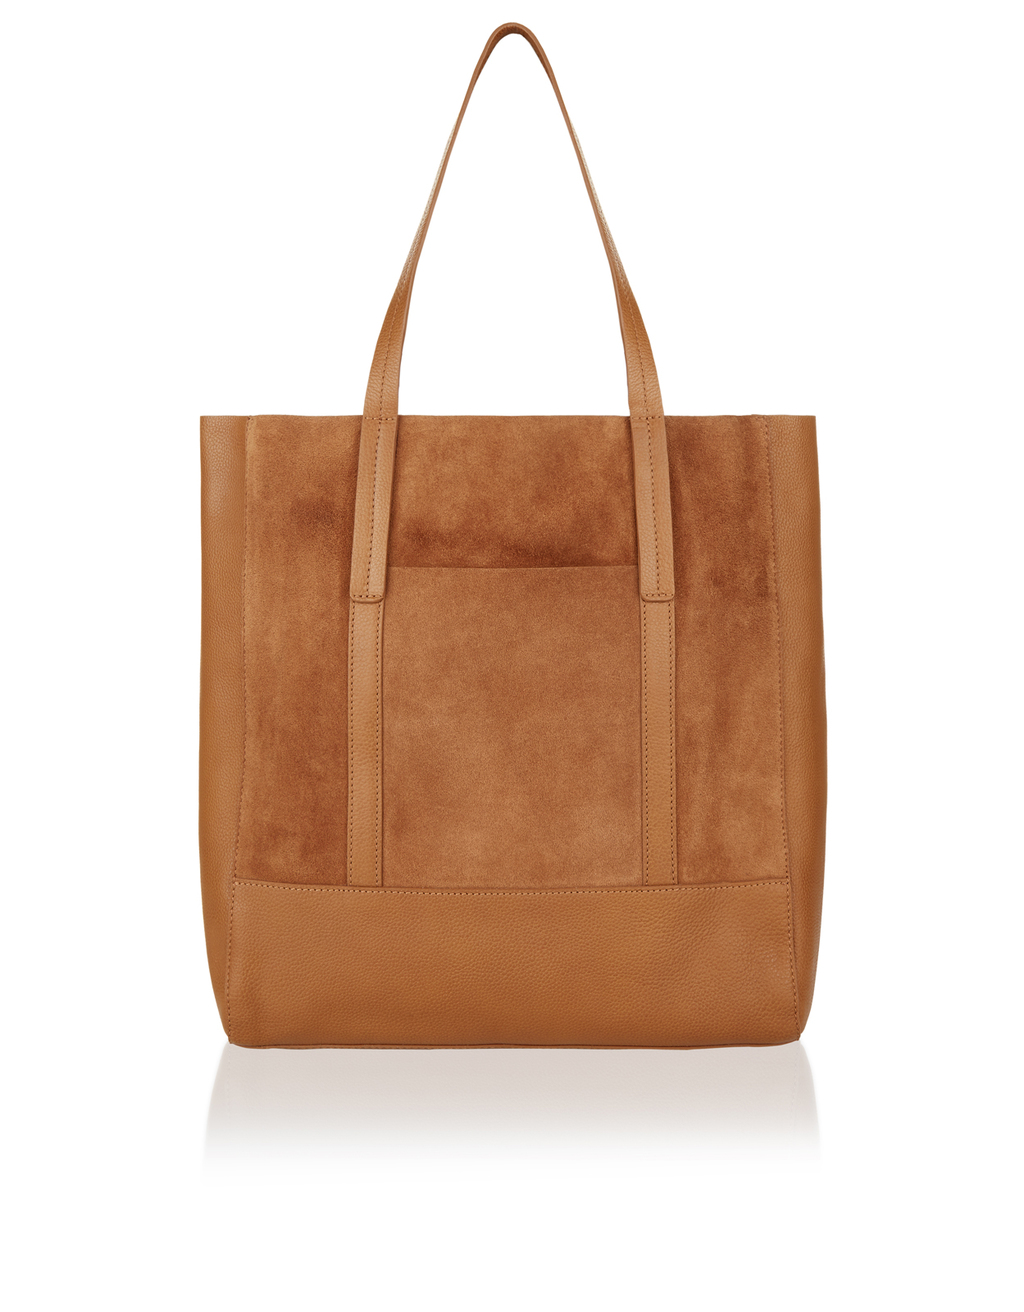 Carina Suede & Leather Shopper Bag - predominant colour: tan; occasions: casual, creative work; type of pattern: standard; style: tote; length: shoulder (tucks under arm); size: oversized; material: leather; pattern: plain; finish: plain; season: s/s 2016; wardrobe: highlight